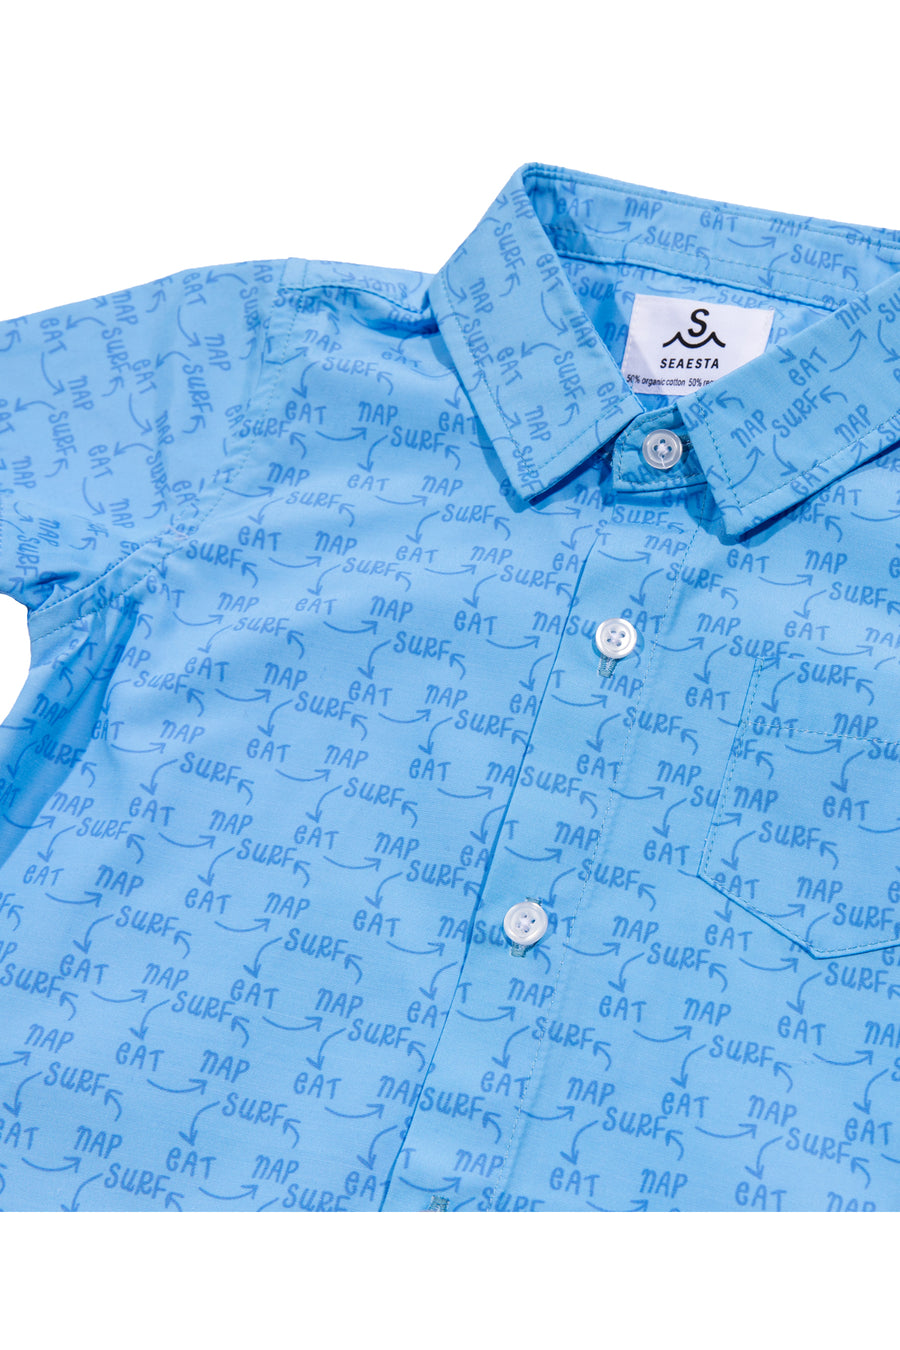 Surf Eat Nap Button Up Shirt | Recycled | Light Blue